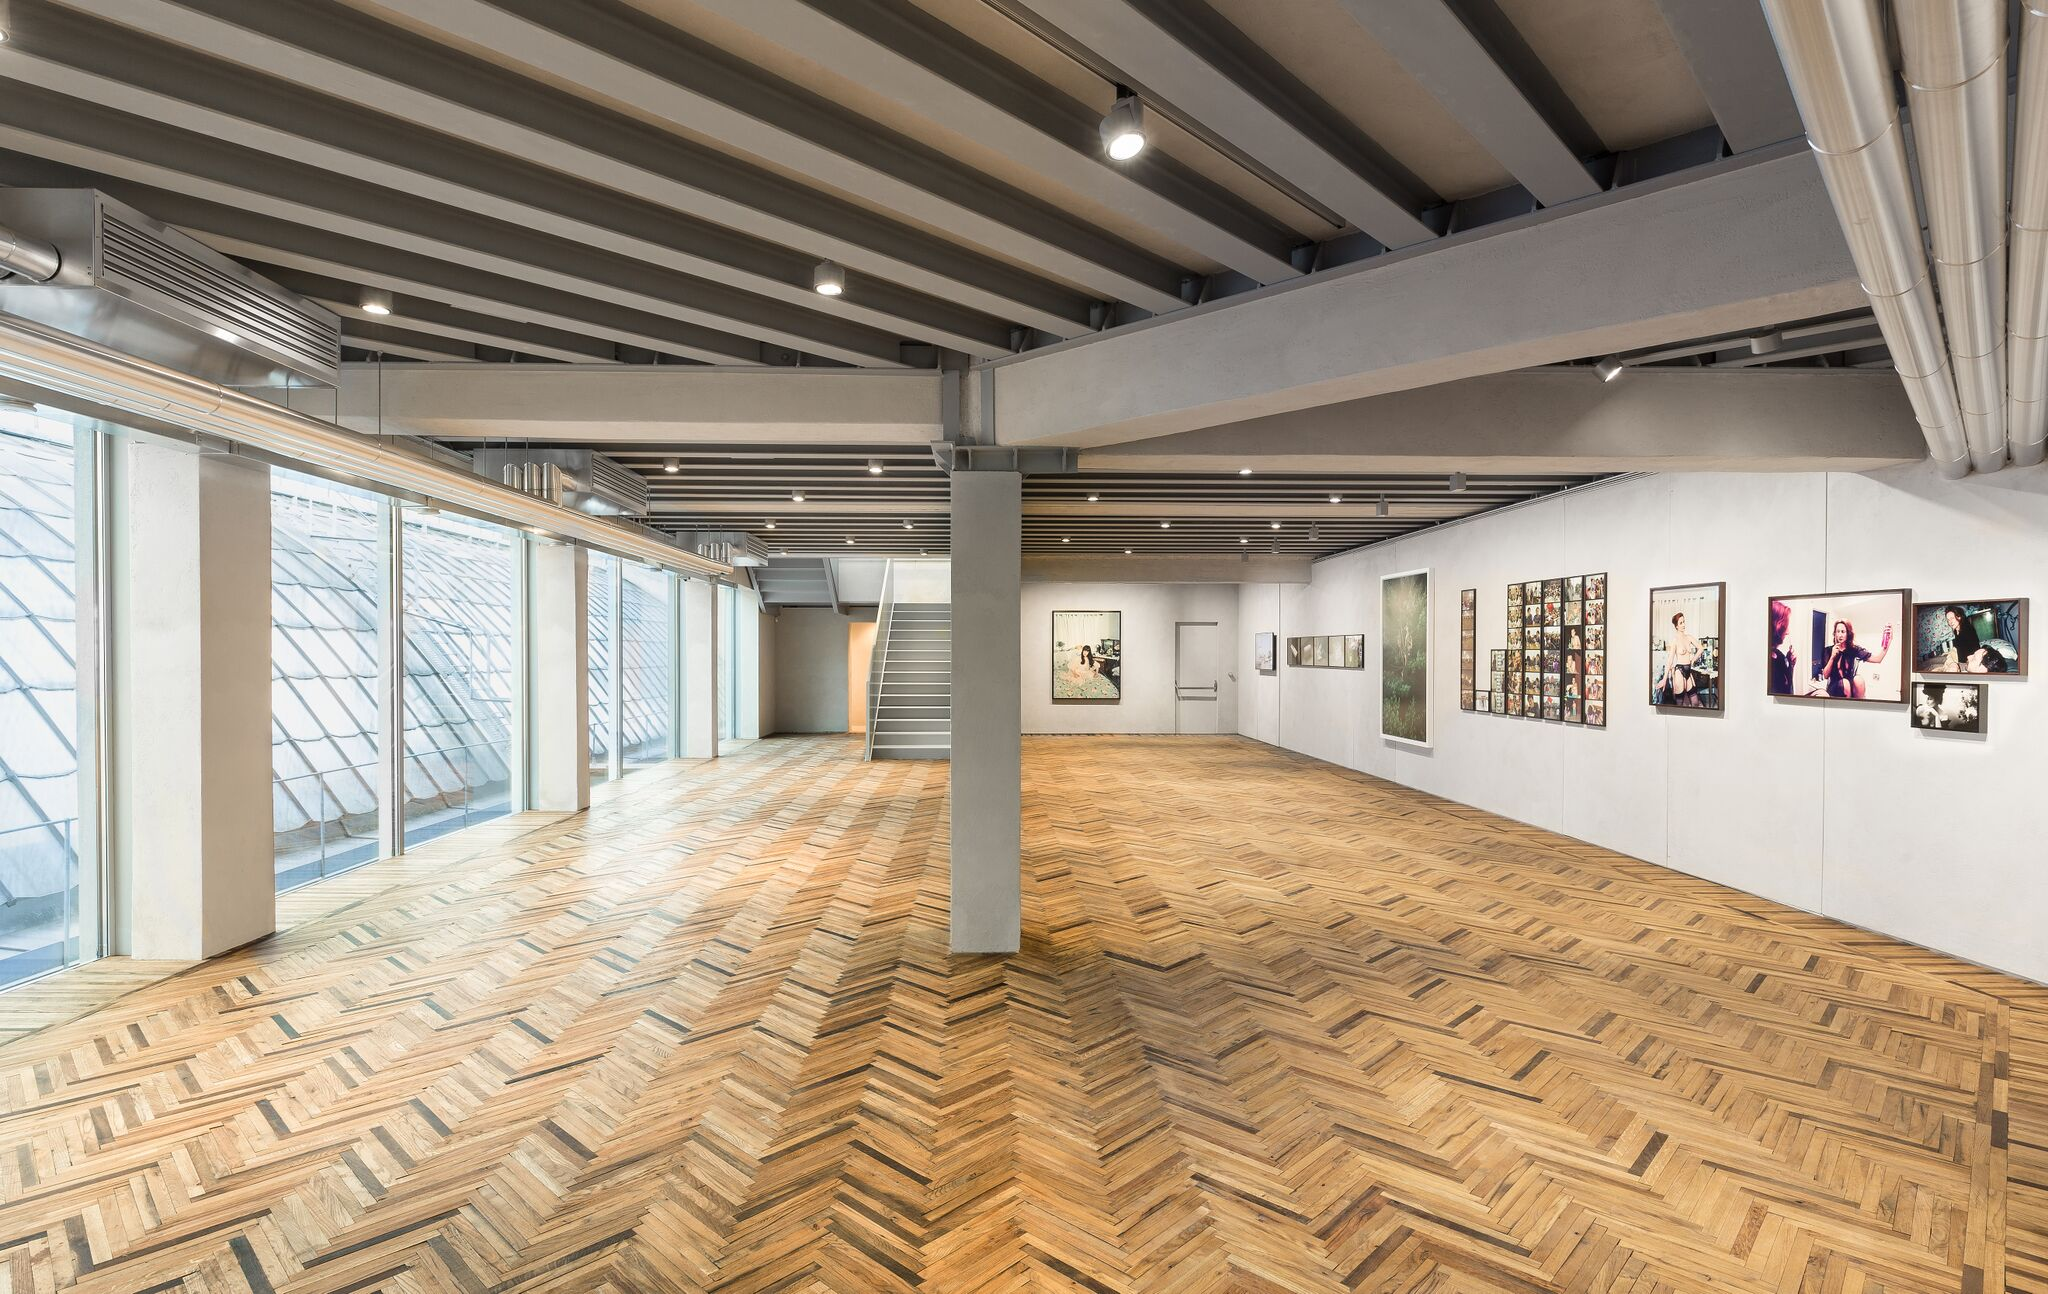 Fondazione Prada Osservatorio, exhibition view, from left to right: Leigh Ledare, Vendula Knopová, Maurice van Es, Ryan McGinley, Wen Ling (Foto: Delfino Sisto Legnani and Marco Cappelletti; Courtesy Fondazione Prada)